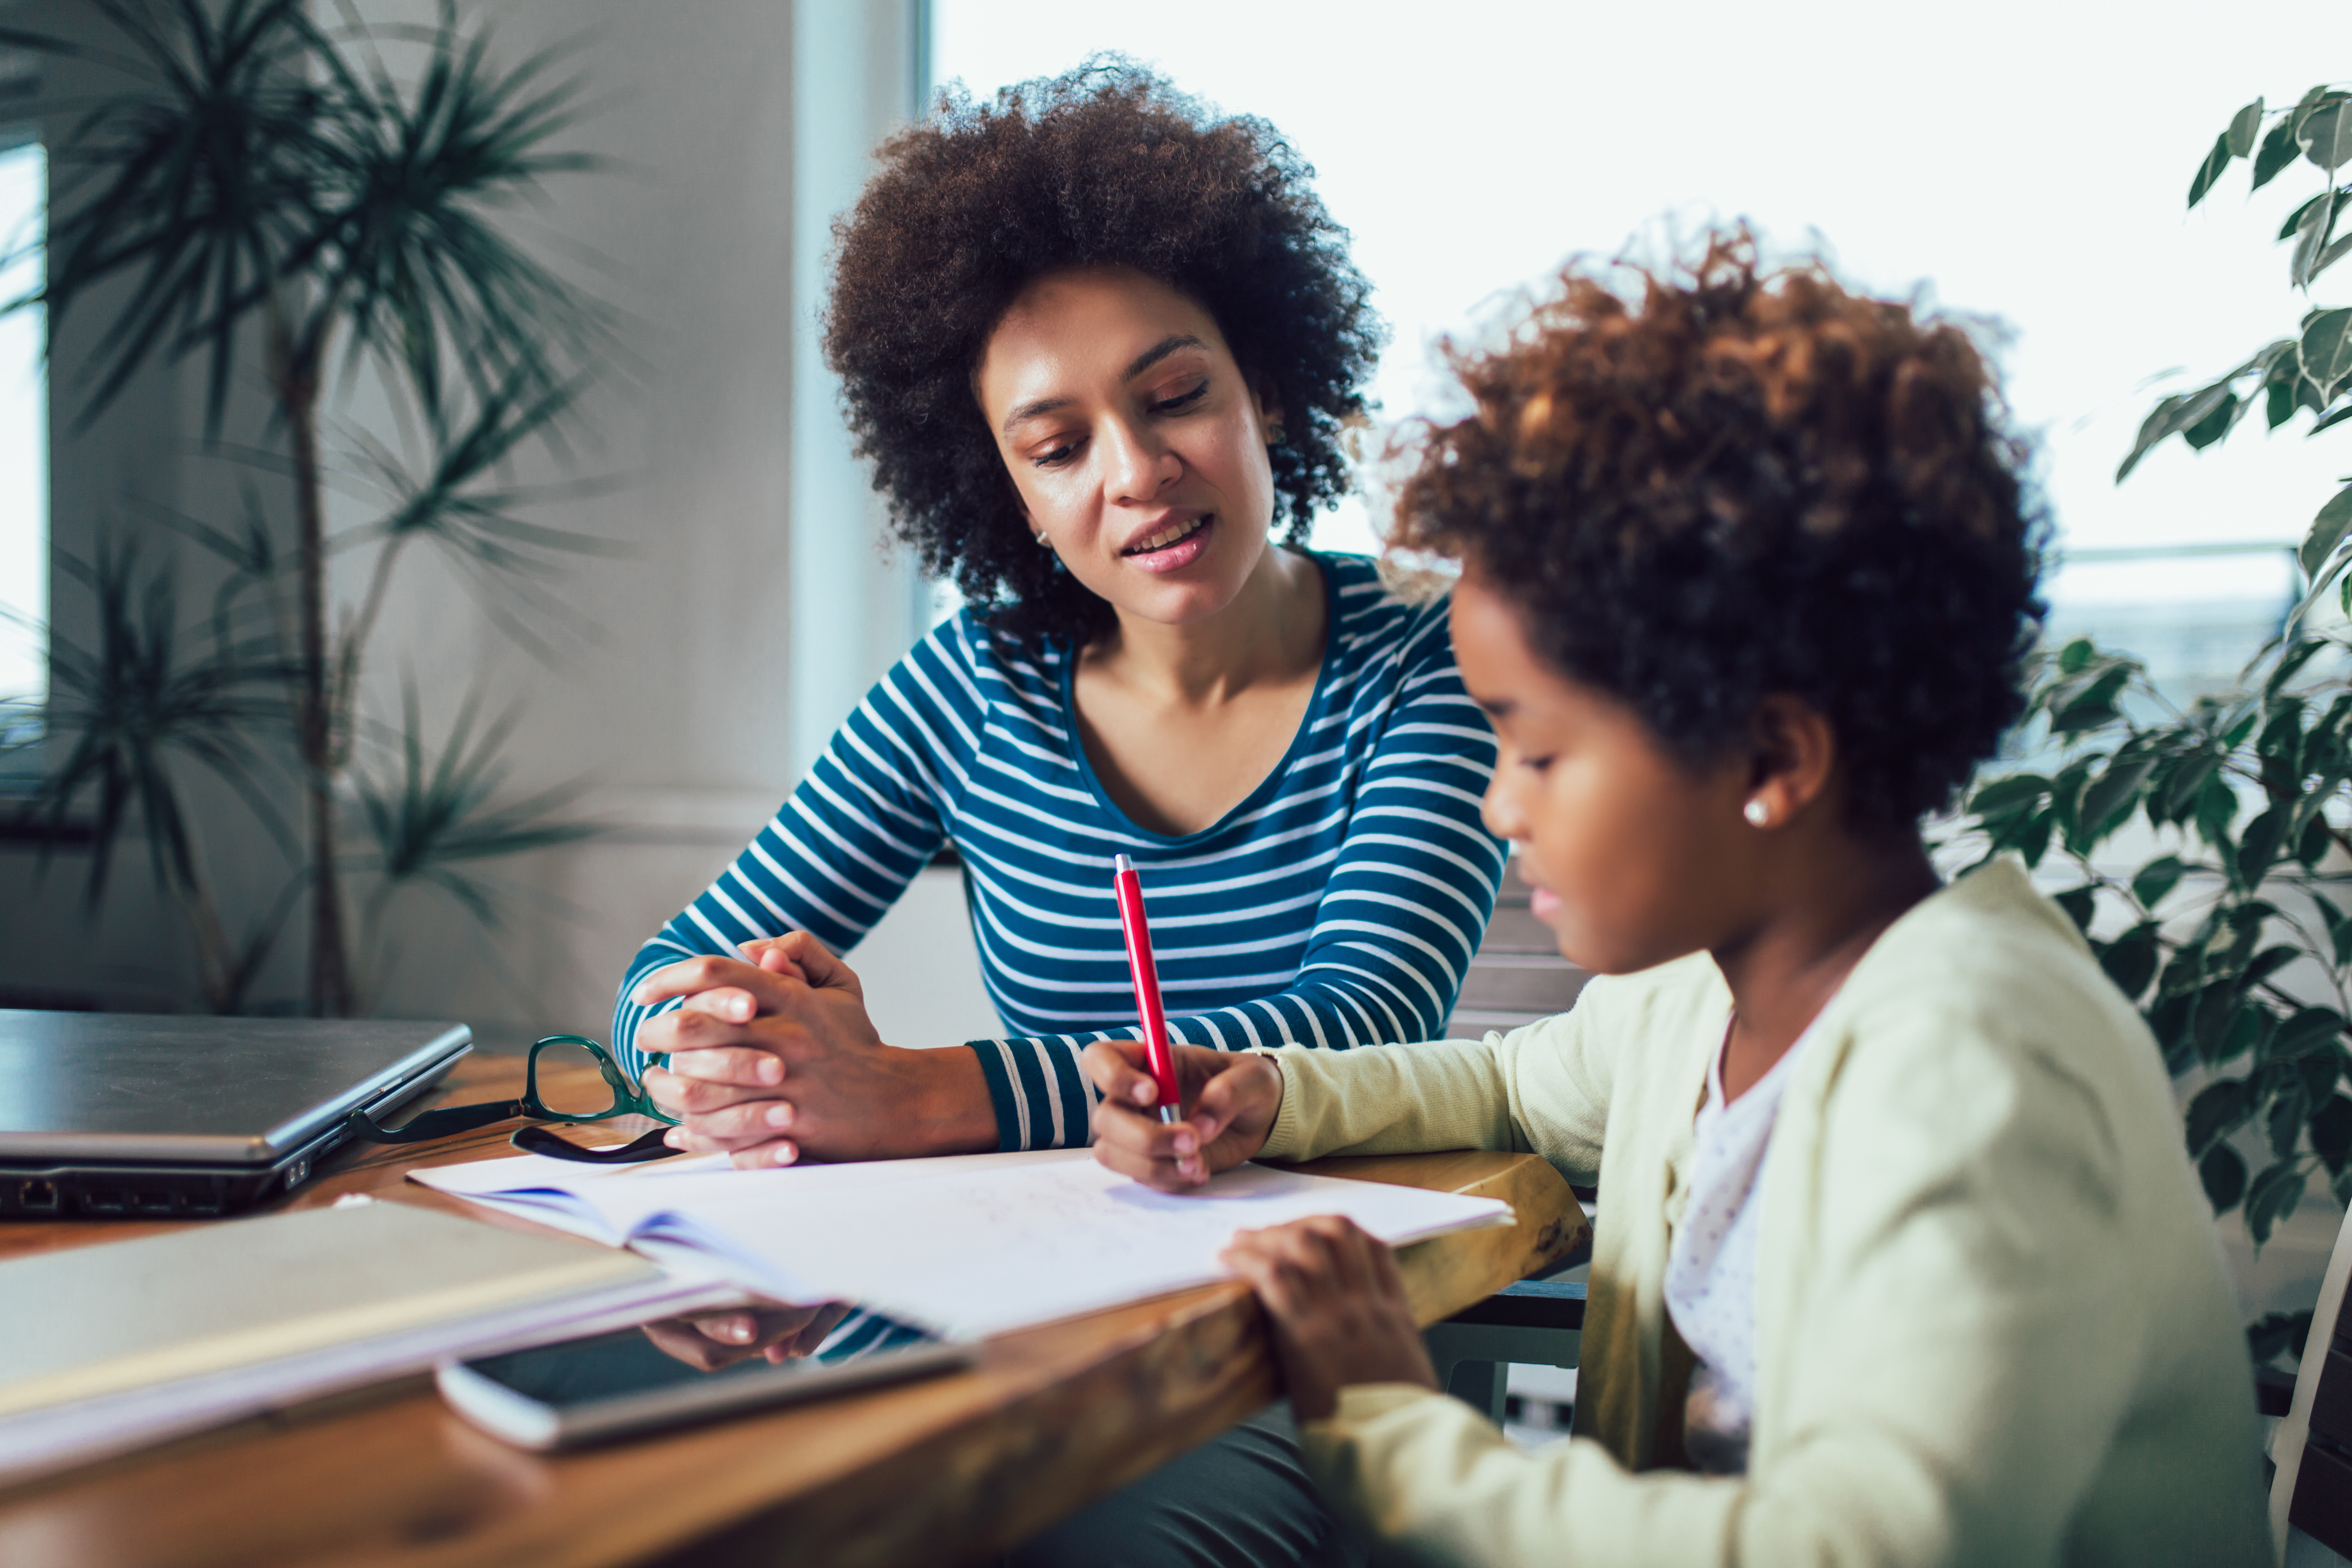 Homeschooling and home learning environment